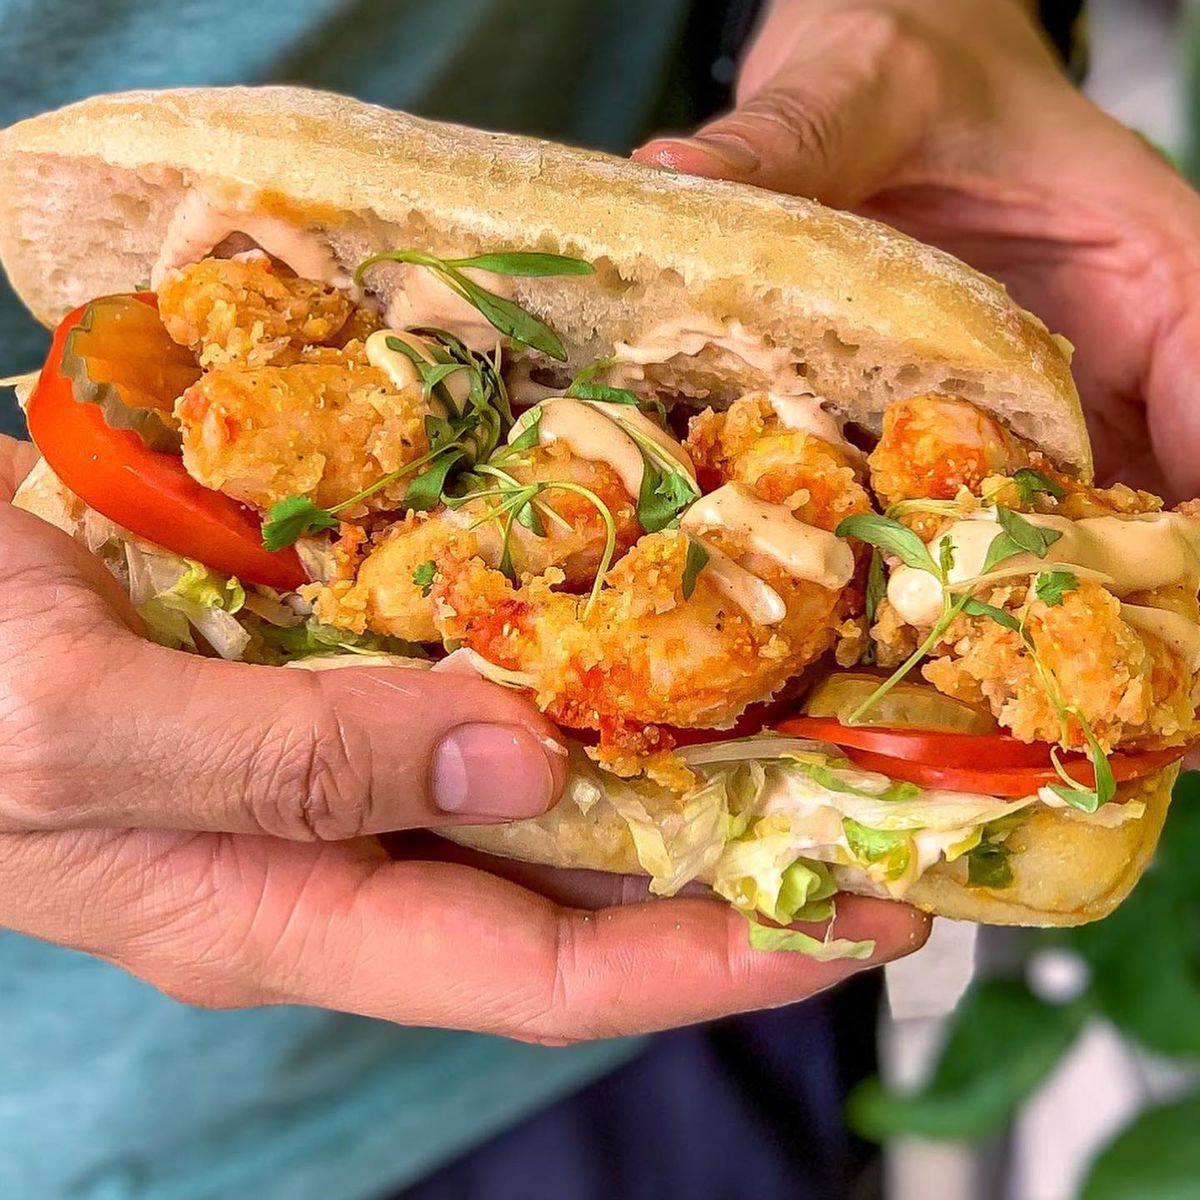 A vegan shrimp po' boy stuffed with fried shrimp, slices of red tomato, and shredded lettuce. Two hands are holding the sandwich.